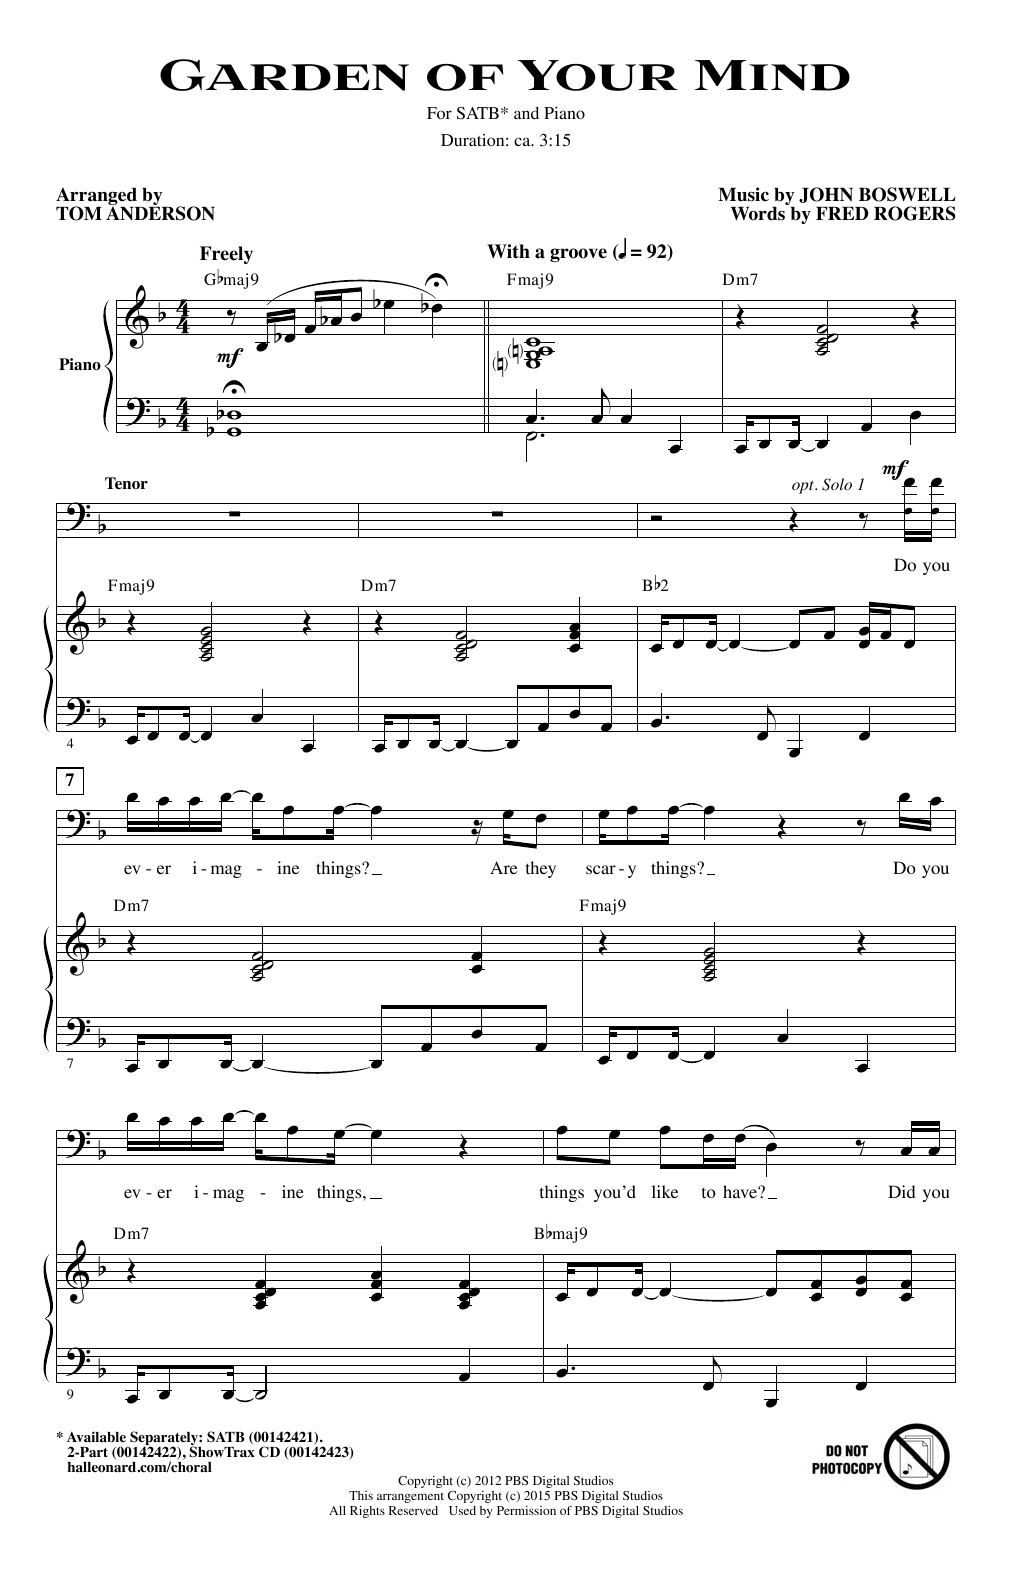 Garden Of Your Mind (SATB Choir)